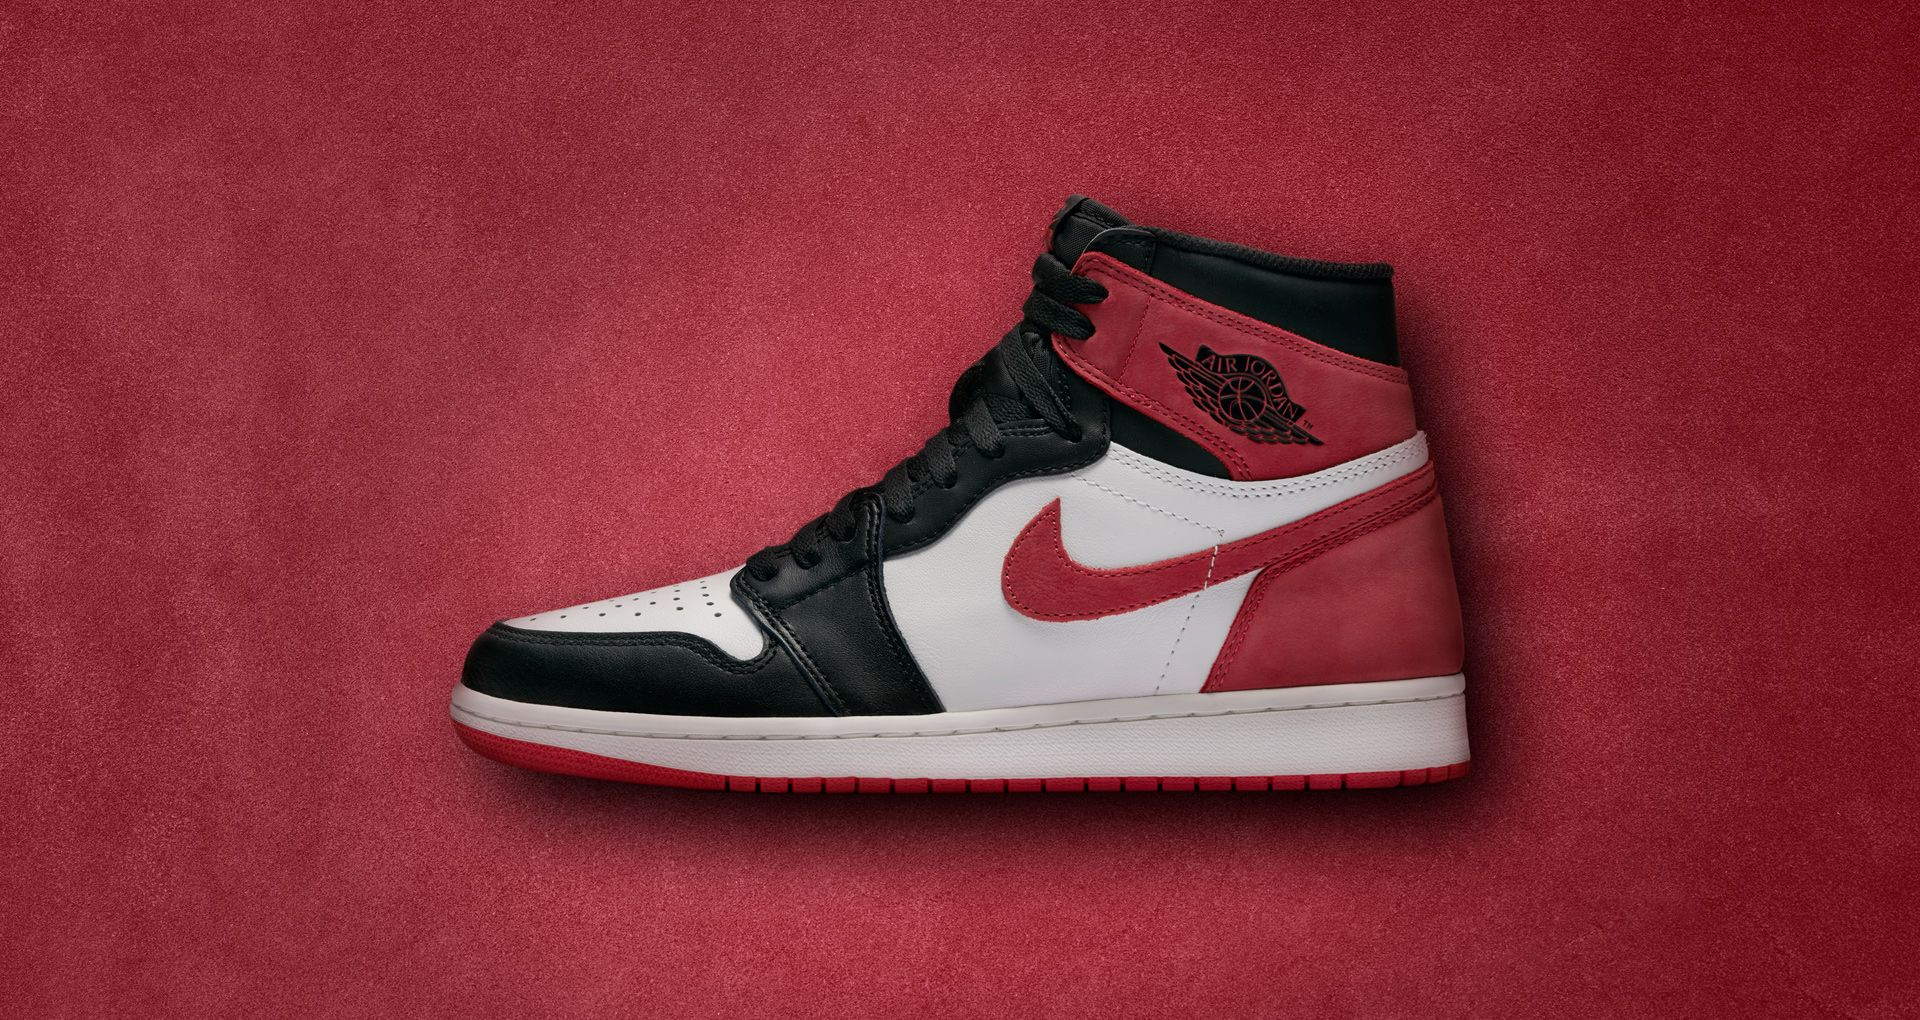 848d29b8b3 Nike Air Jordan 1 'Summit White & Track Red & Black' Release ...